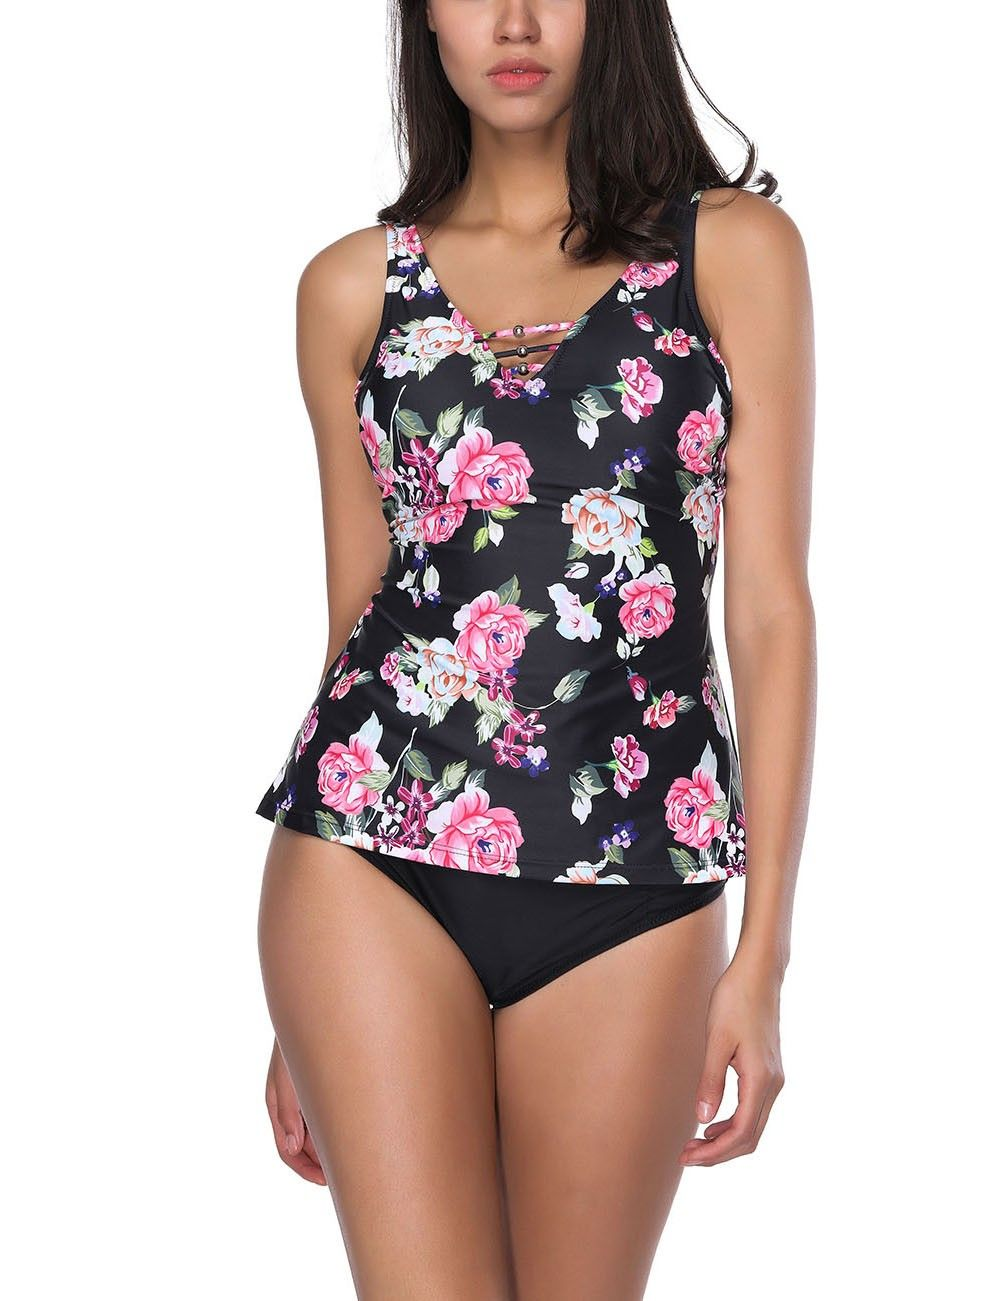 3f2039cdc8197 Floral Swimsuit, Black Swimsuit, Plus Size Swimwear, Two Pieces, Band,  Printed